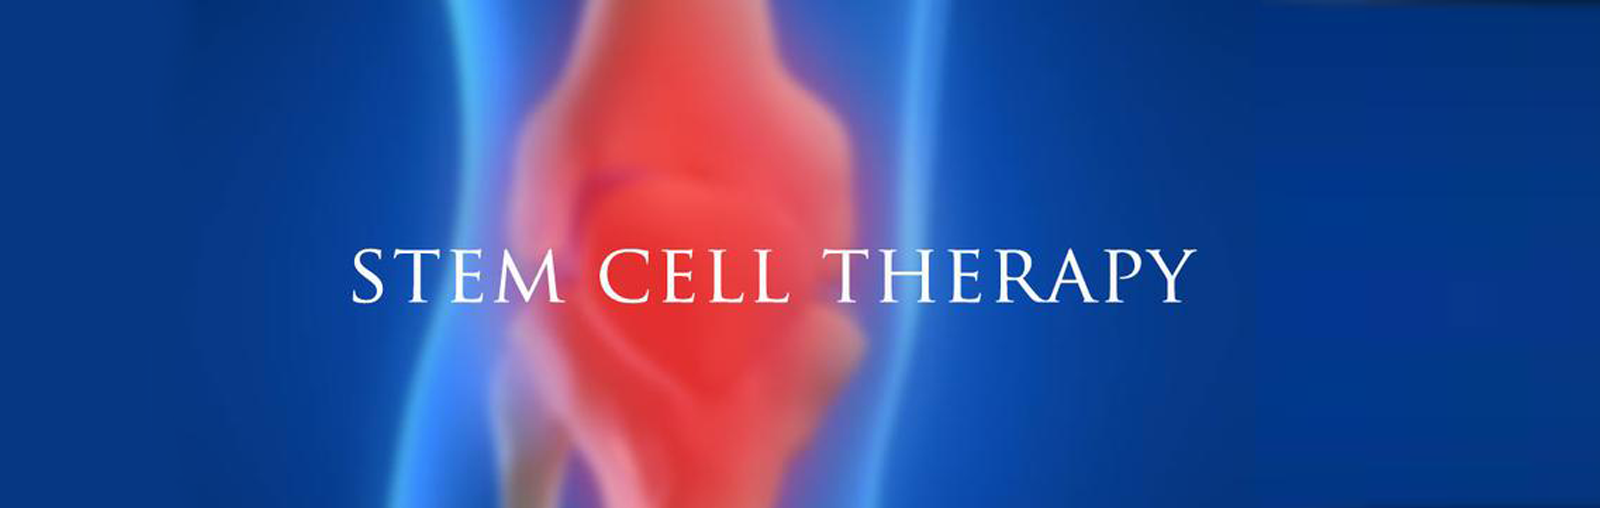 What Is Stem Cell Therapy What Are The Benefits Of Stem